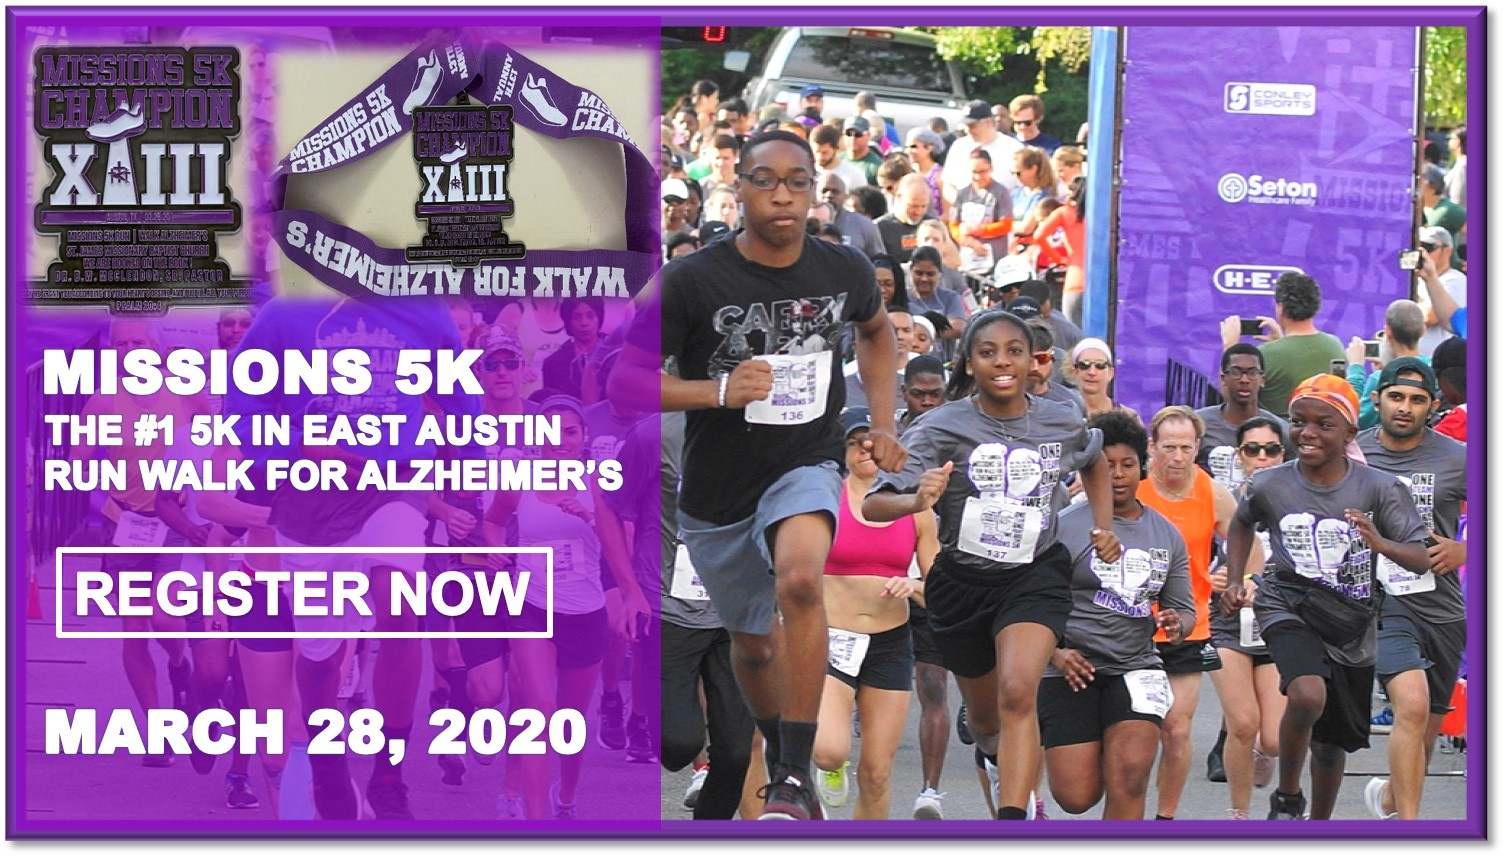 13th Annual Missions 5K Run Walk for Alzheimer's